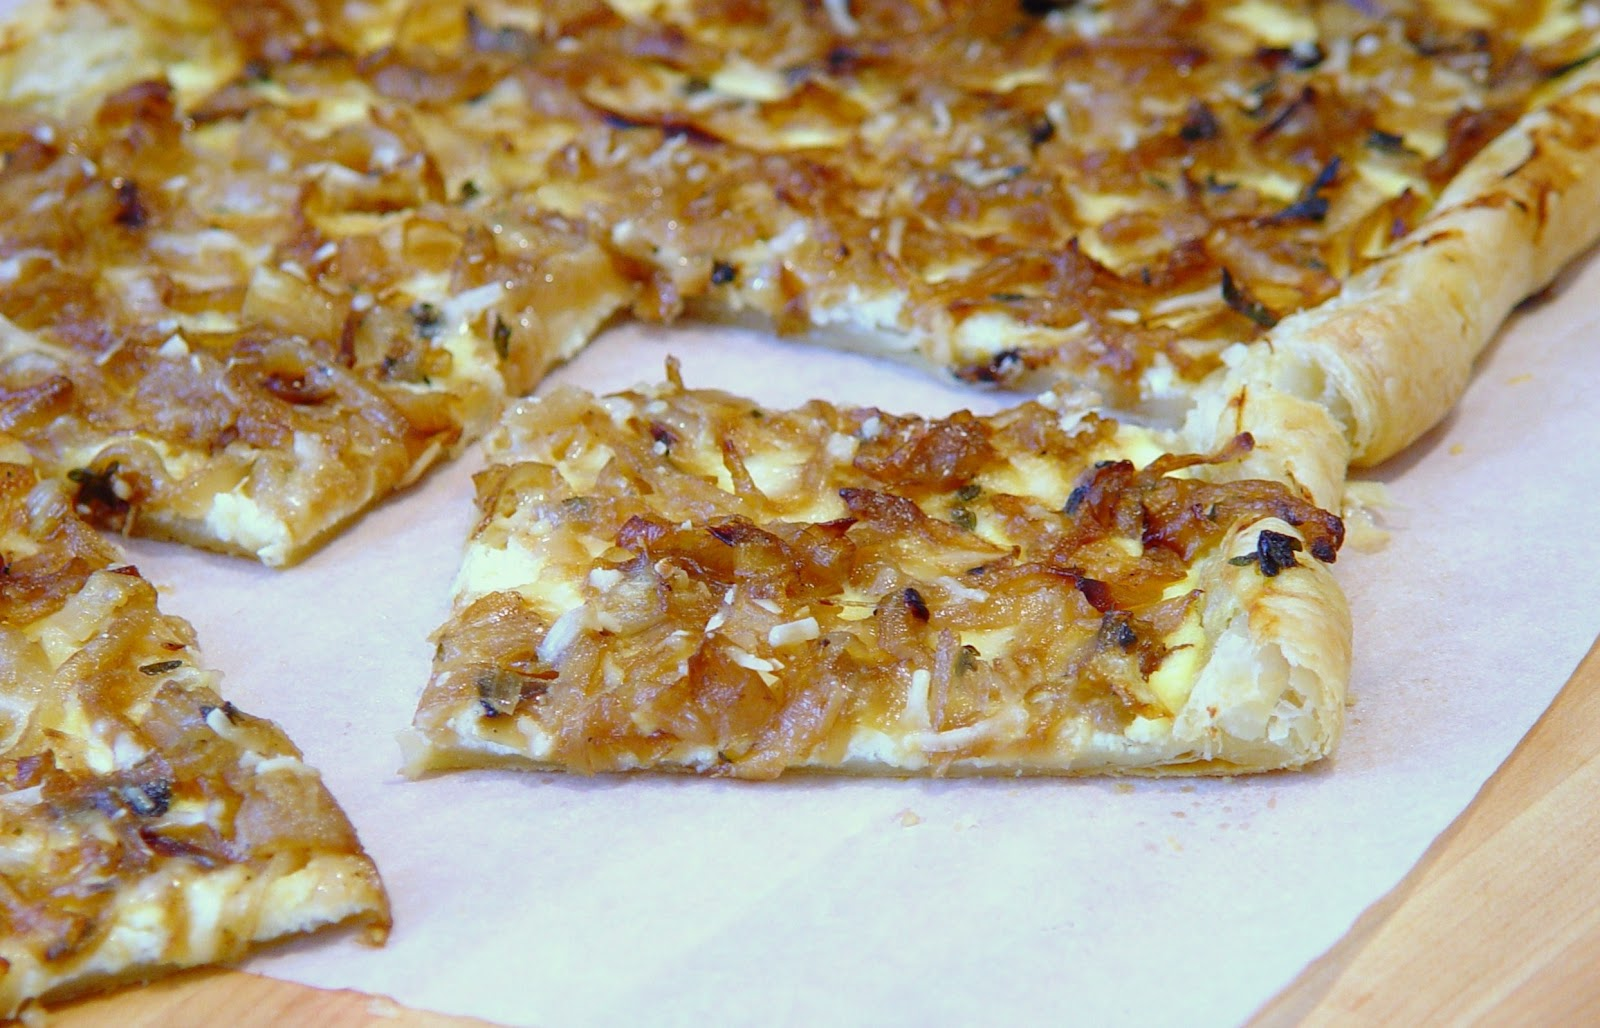 Everything Tasty from My Kitchen: Caramelized French Onion Tart